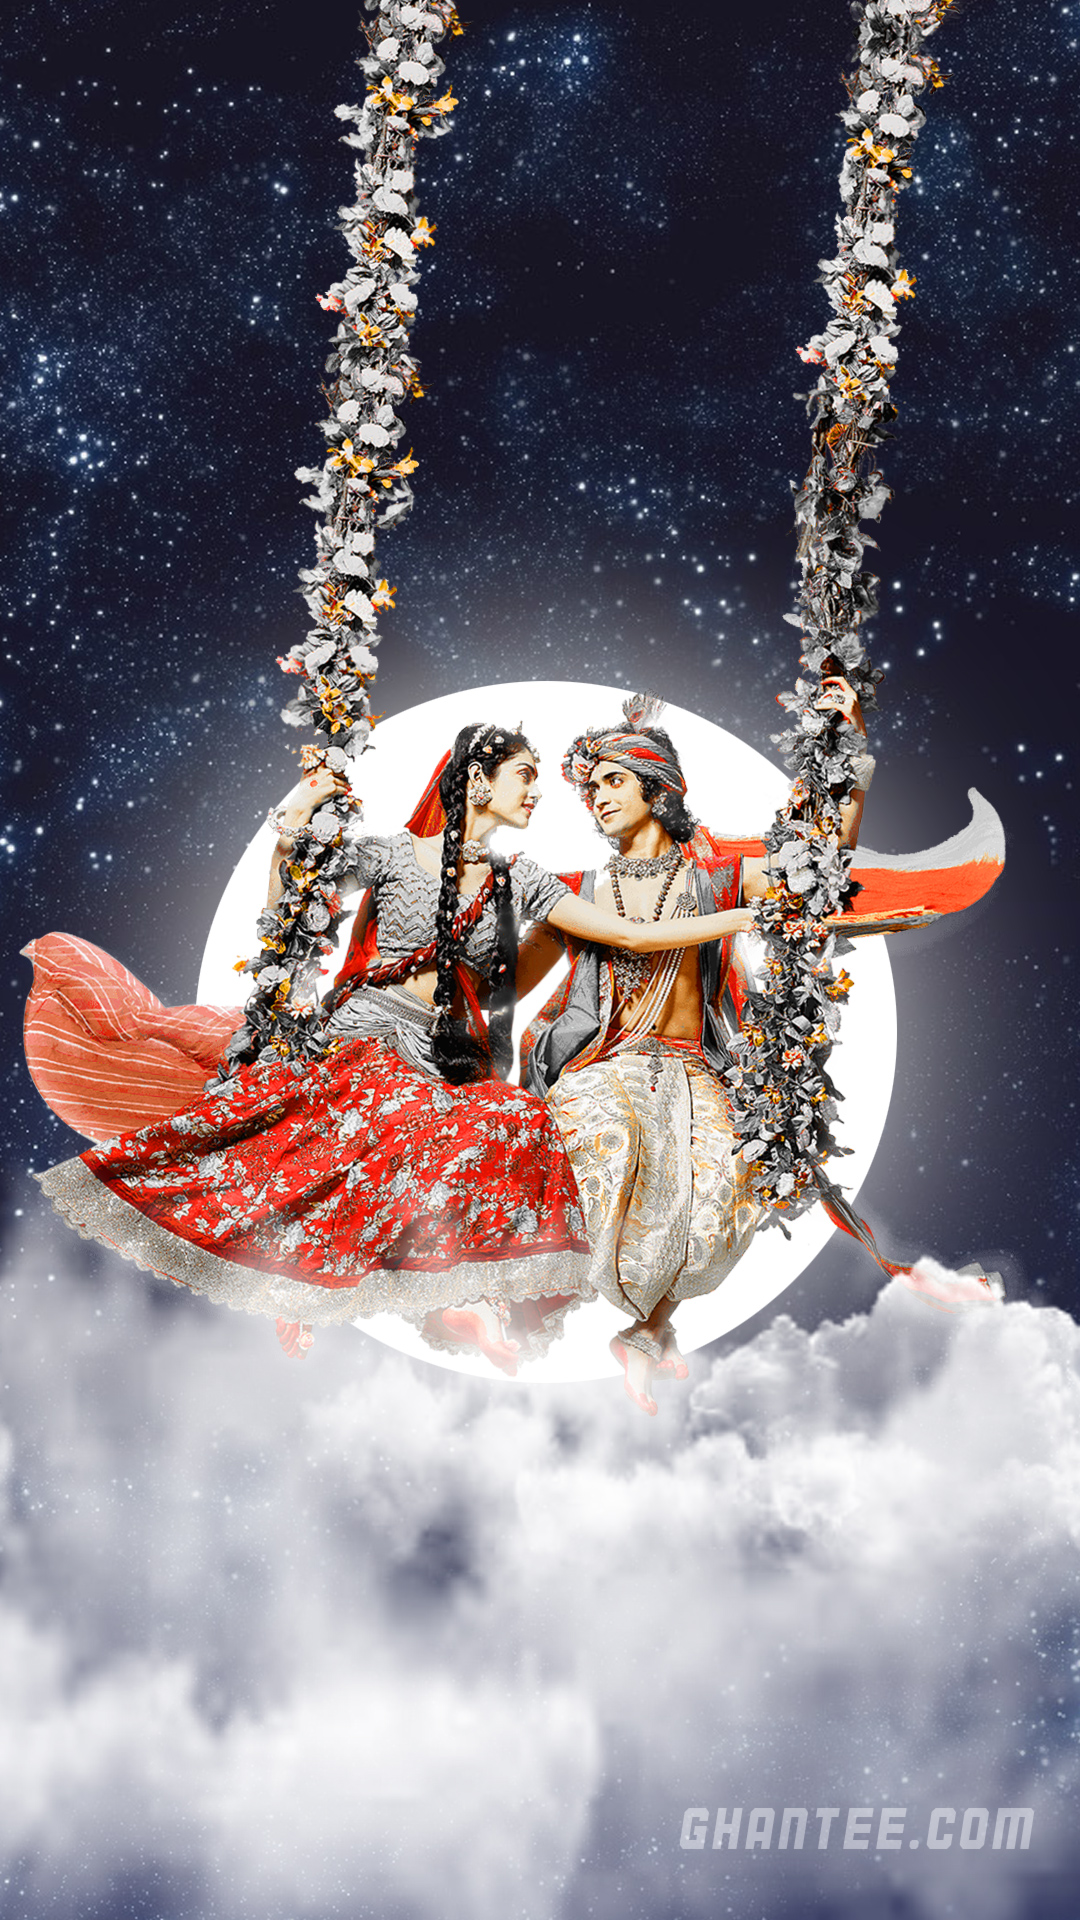 radha krishna beautiful night hd phone wallpaper | radhakrishna